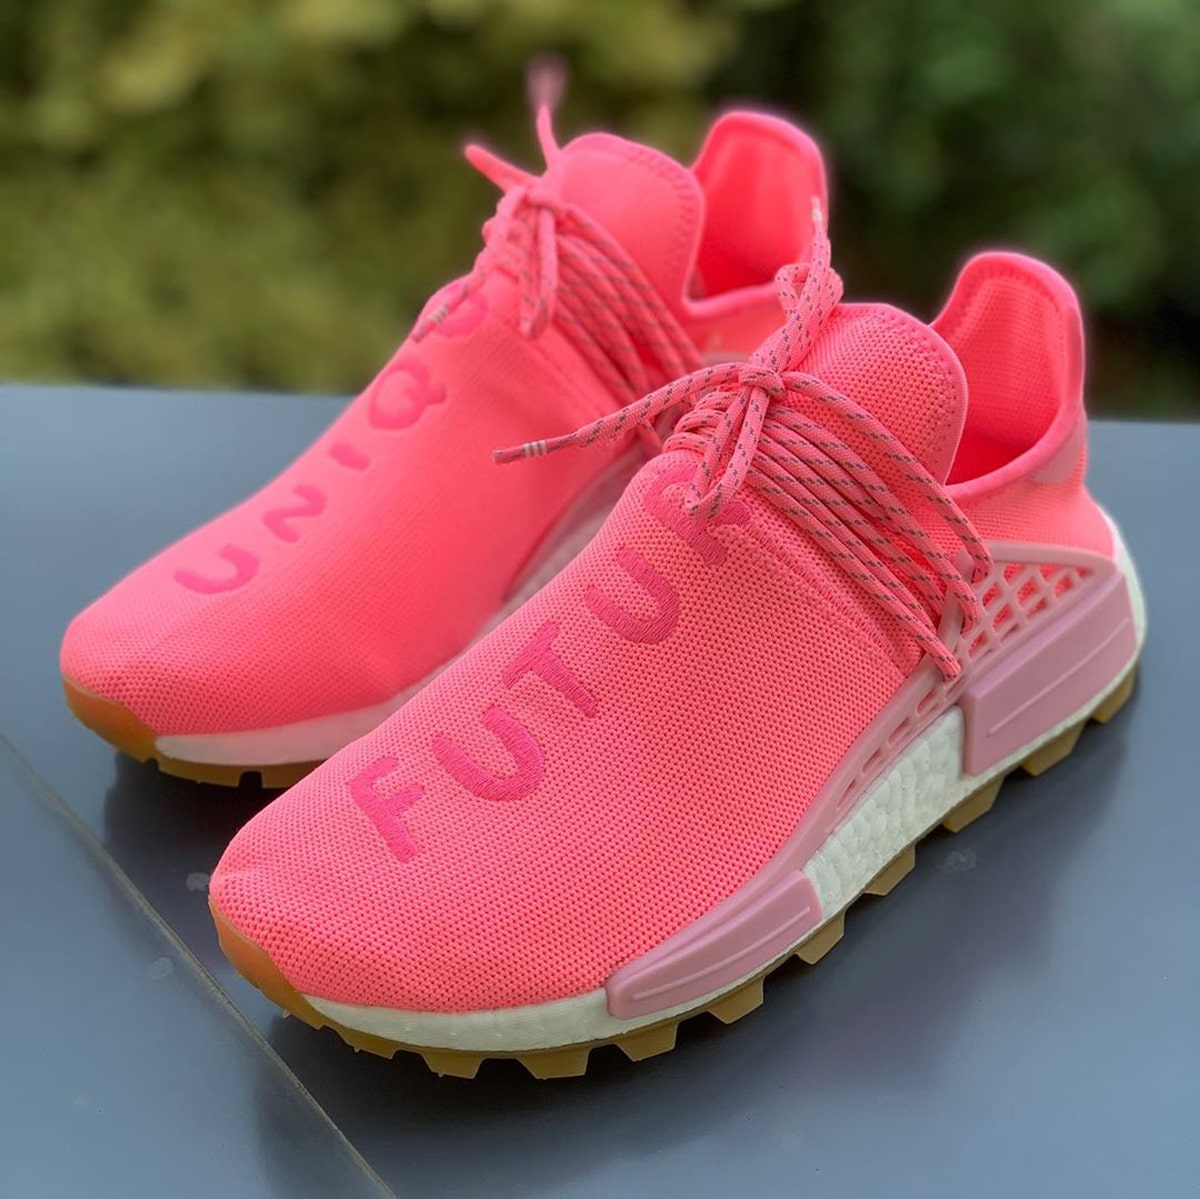 First Look At The Pharrell Williams x adidas NMD Hu